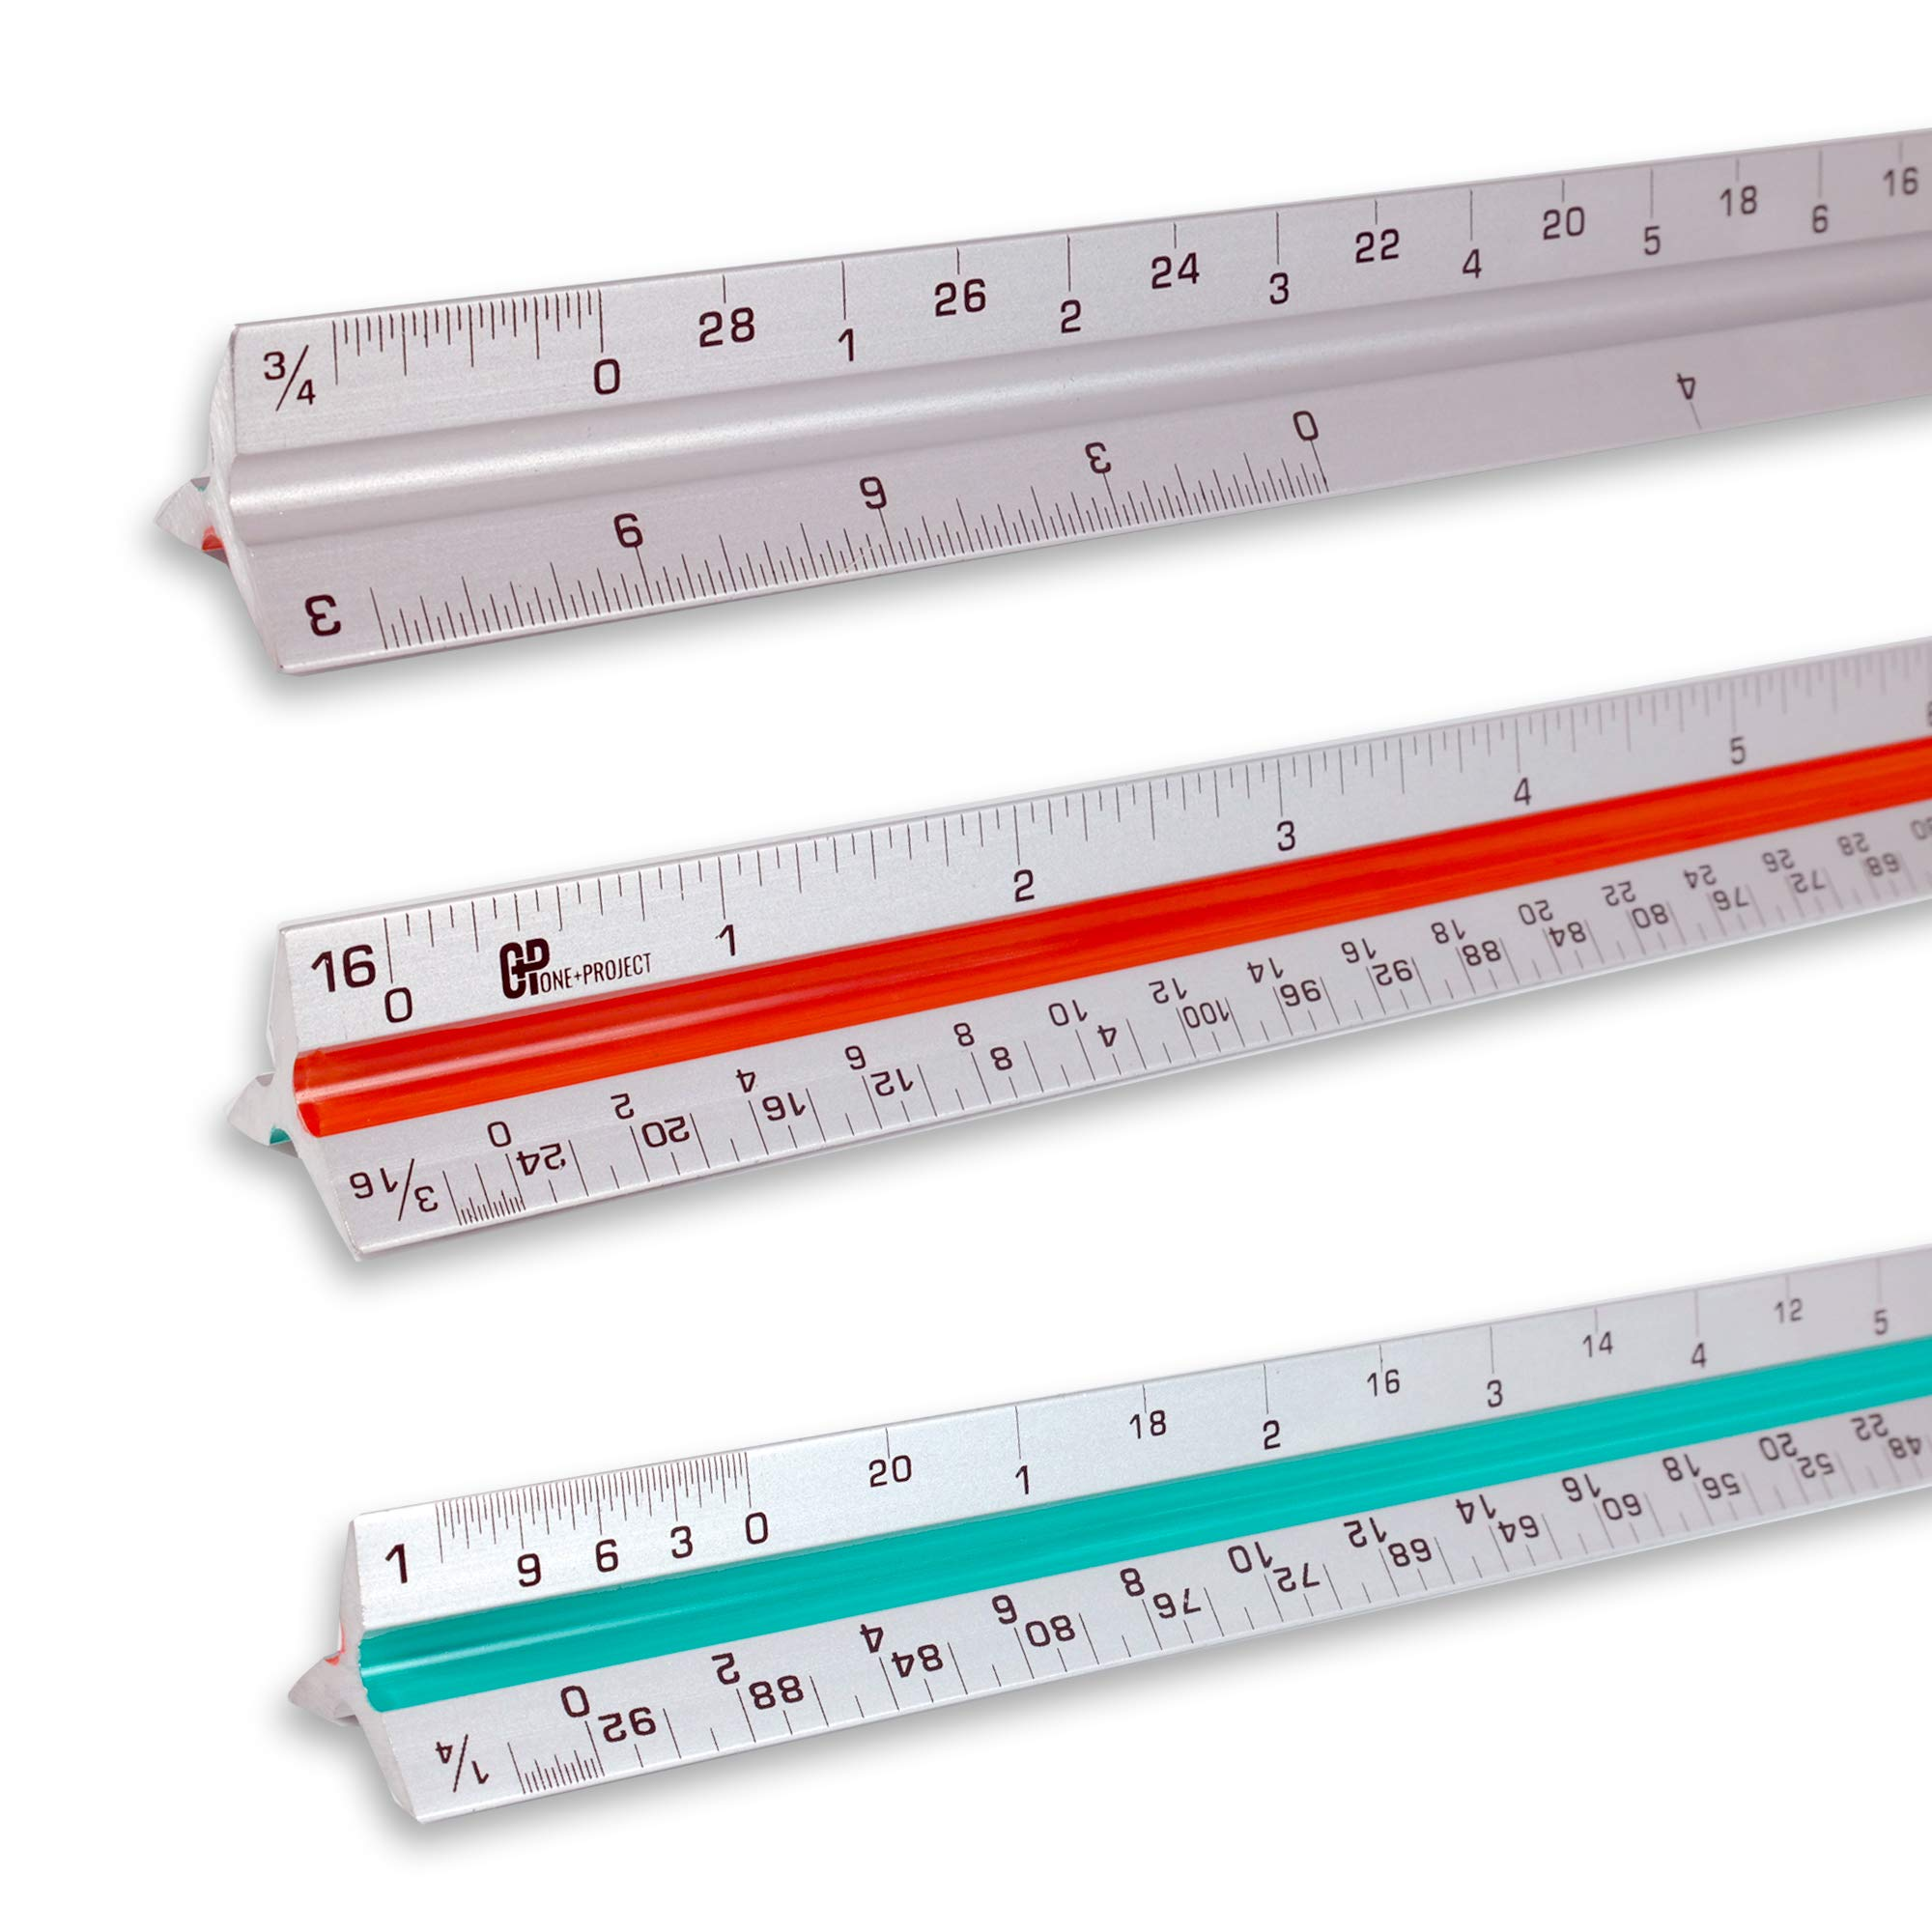 One+Project Triangular Architect Scale,12 – Inch Aluminum Ruler Color – Code Grooves with Protective Carrying Case - Imperial Measurements by One+Project (Image #1)